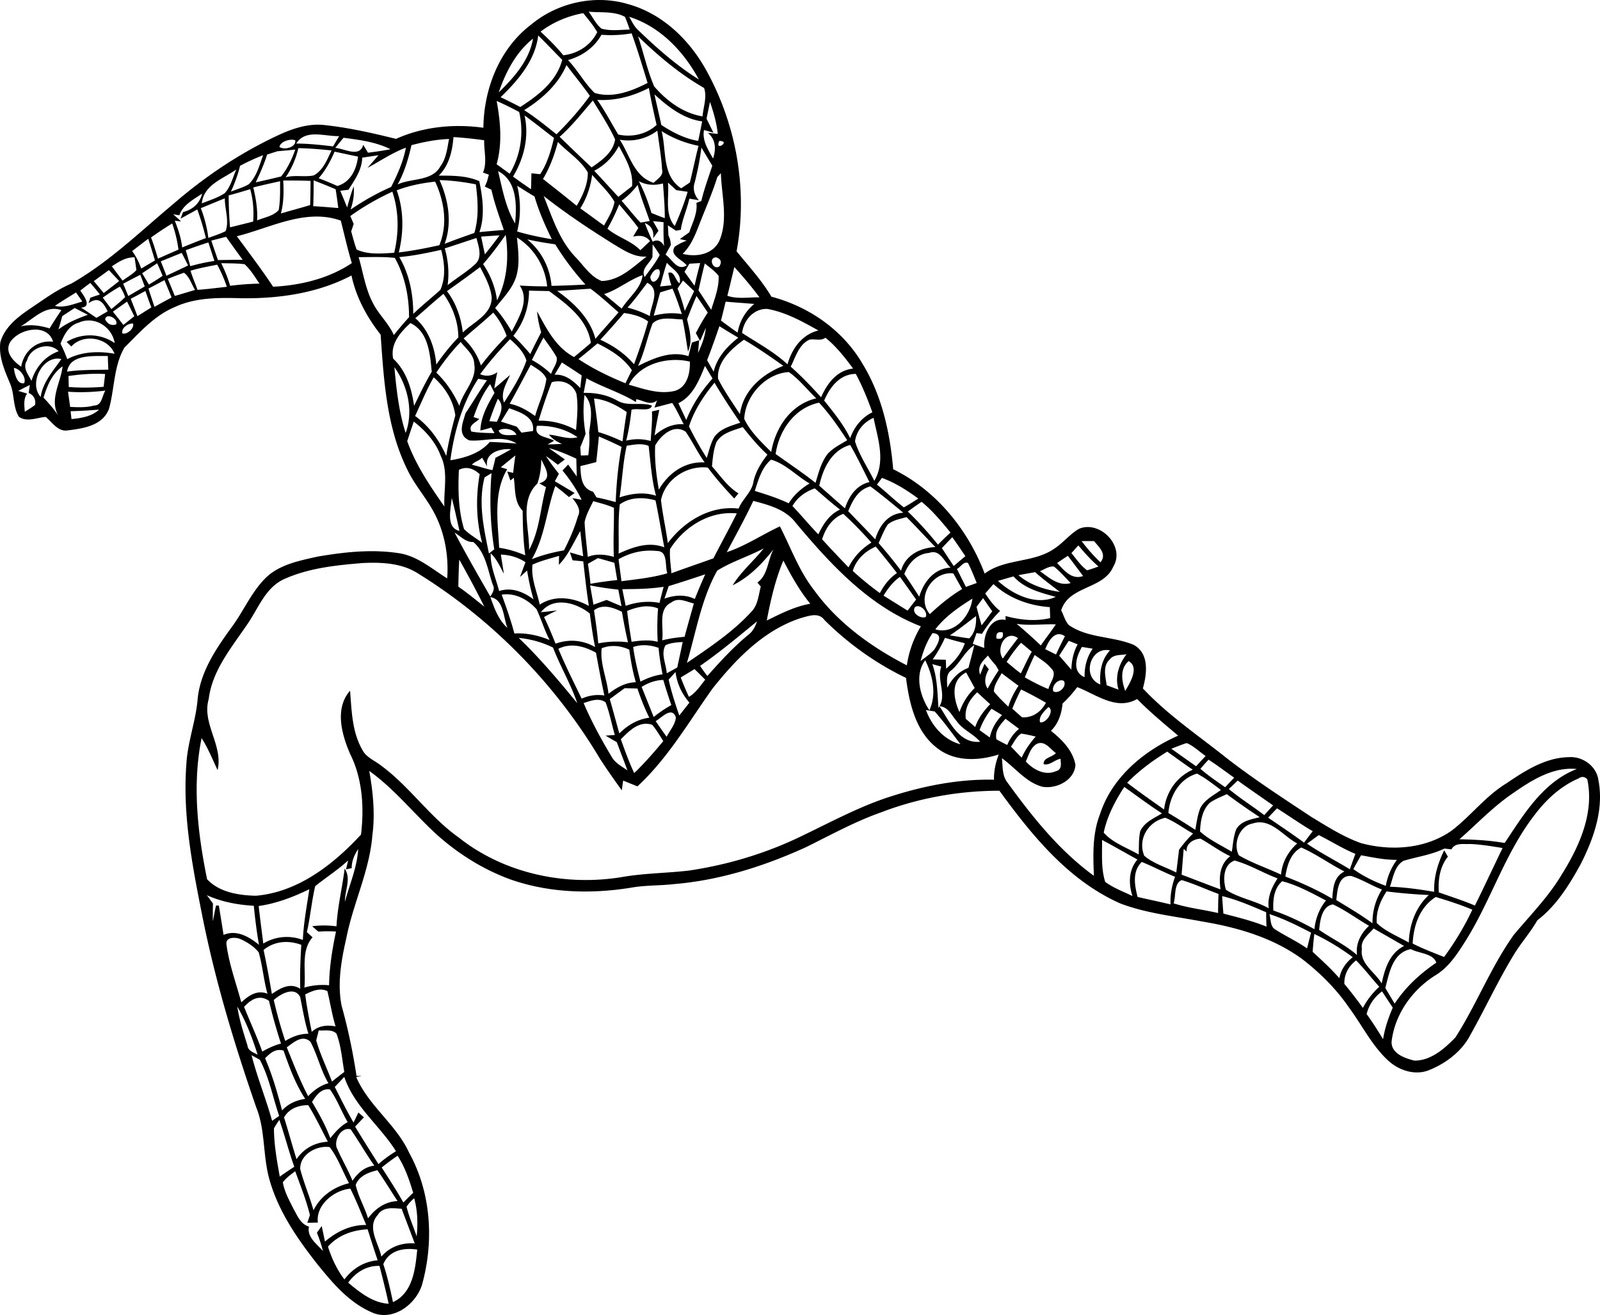 Coloring Pages For Kids Free Printable Spiderman Coloring Pages For Kids